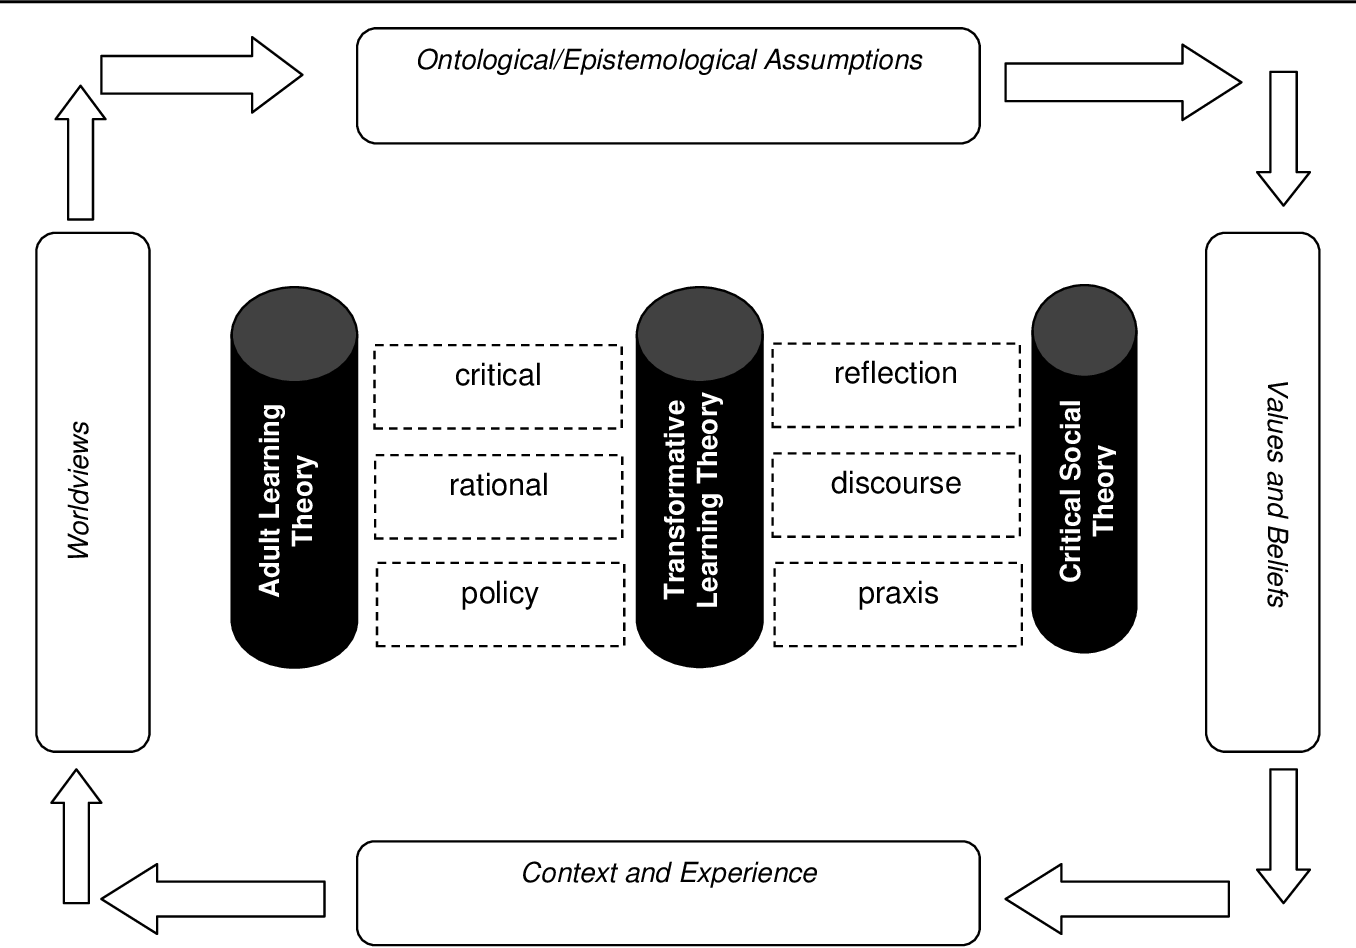 A conceptual framework for leadership development in the